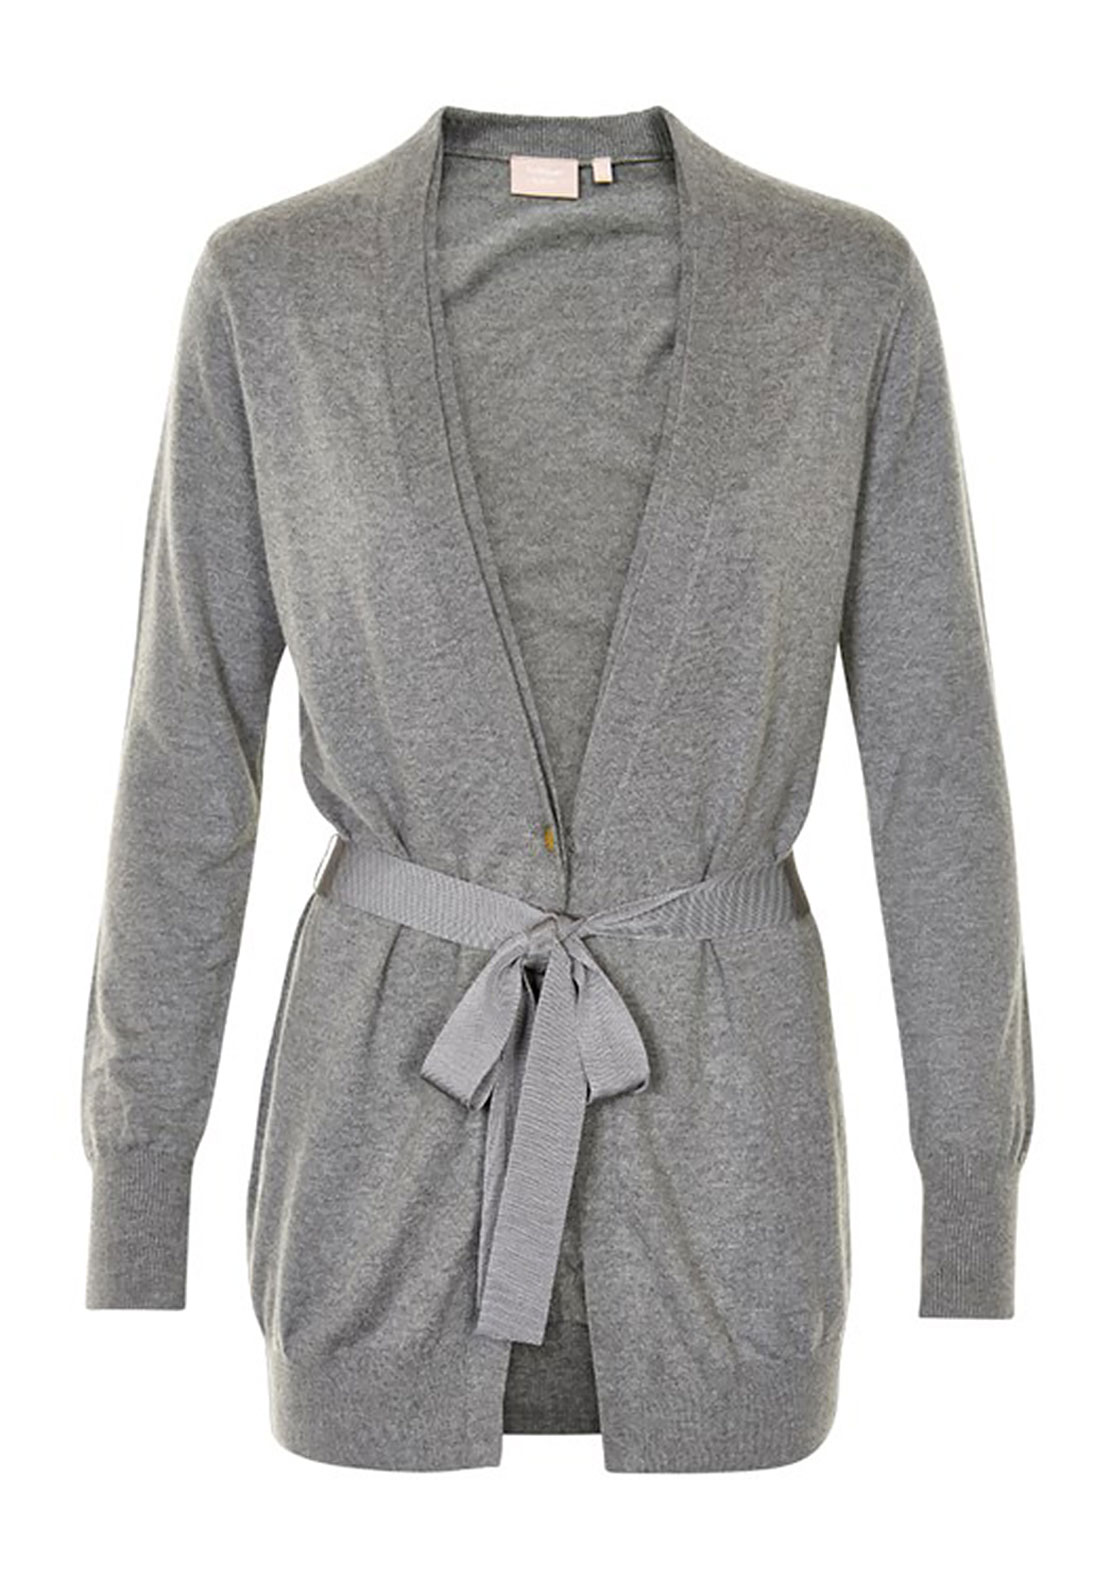 Inwear Lua Lace Trim Cardigan, Grey